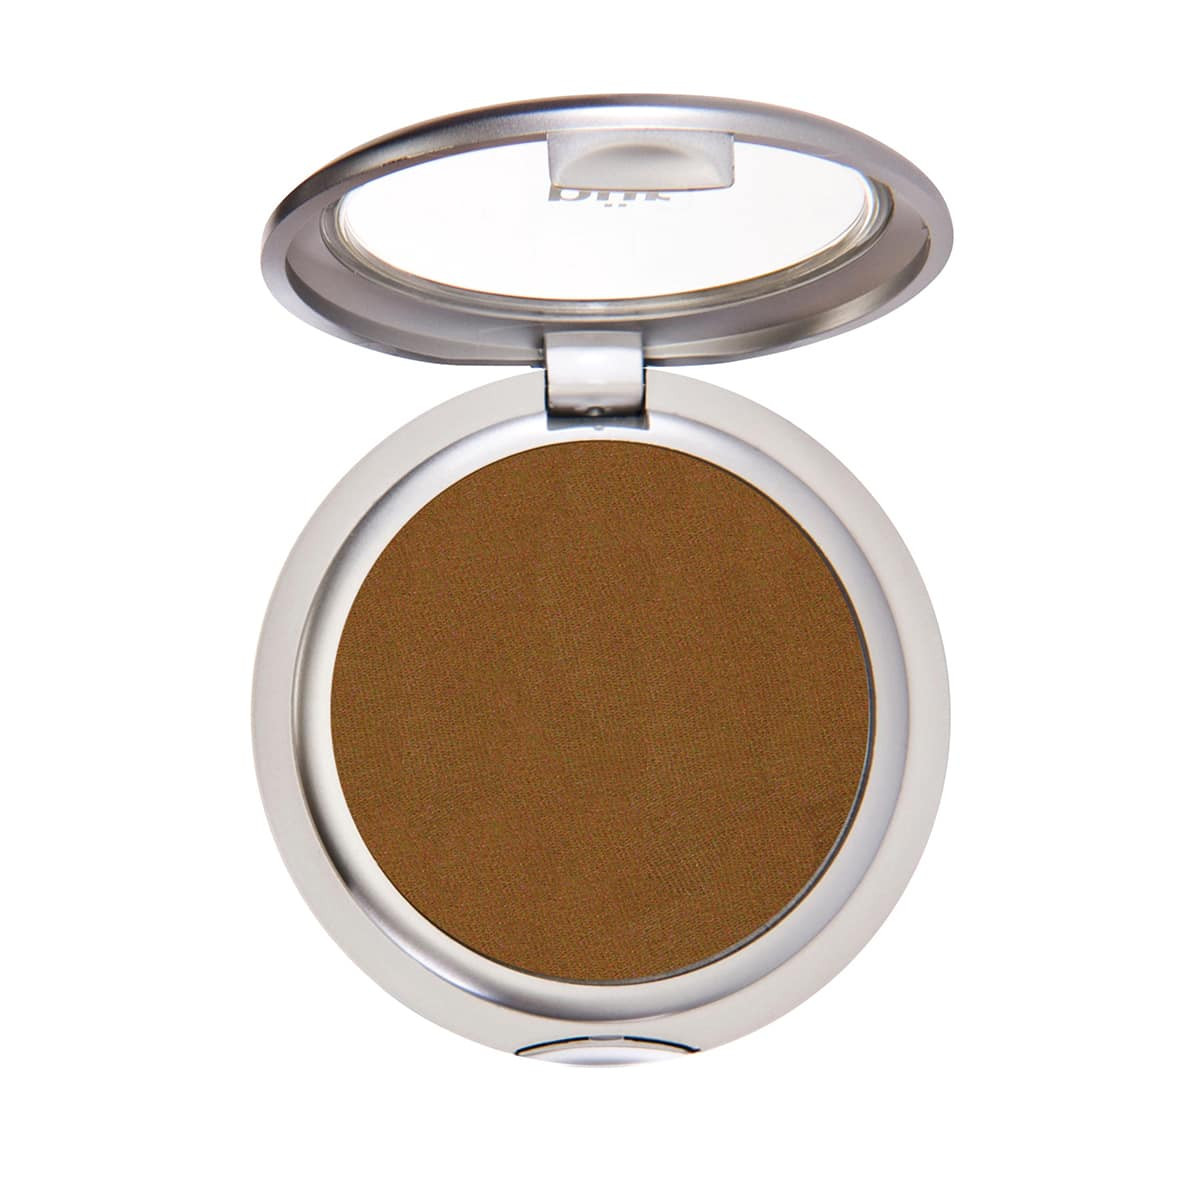 4-in-1 Pressed Mineral Makeup Foundation Deep